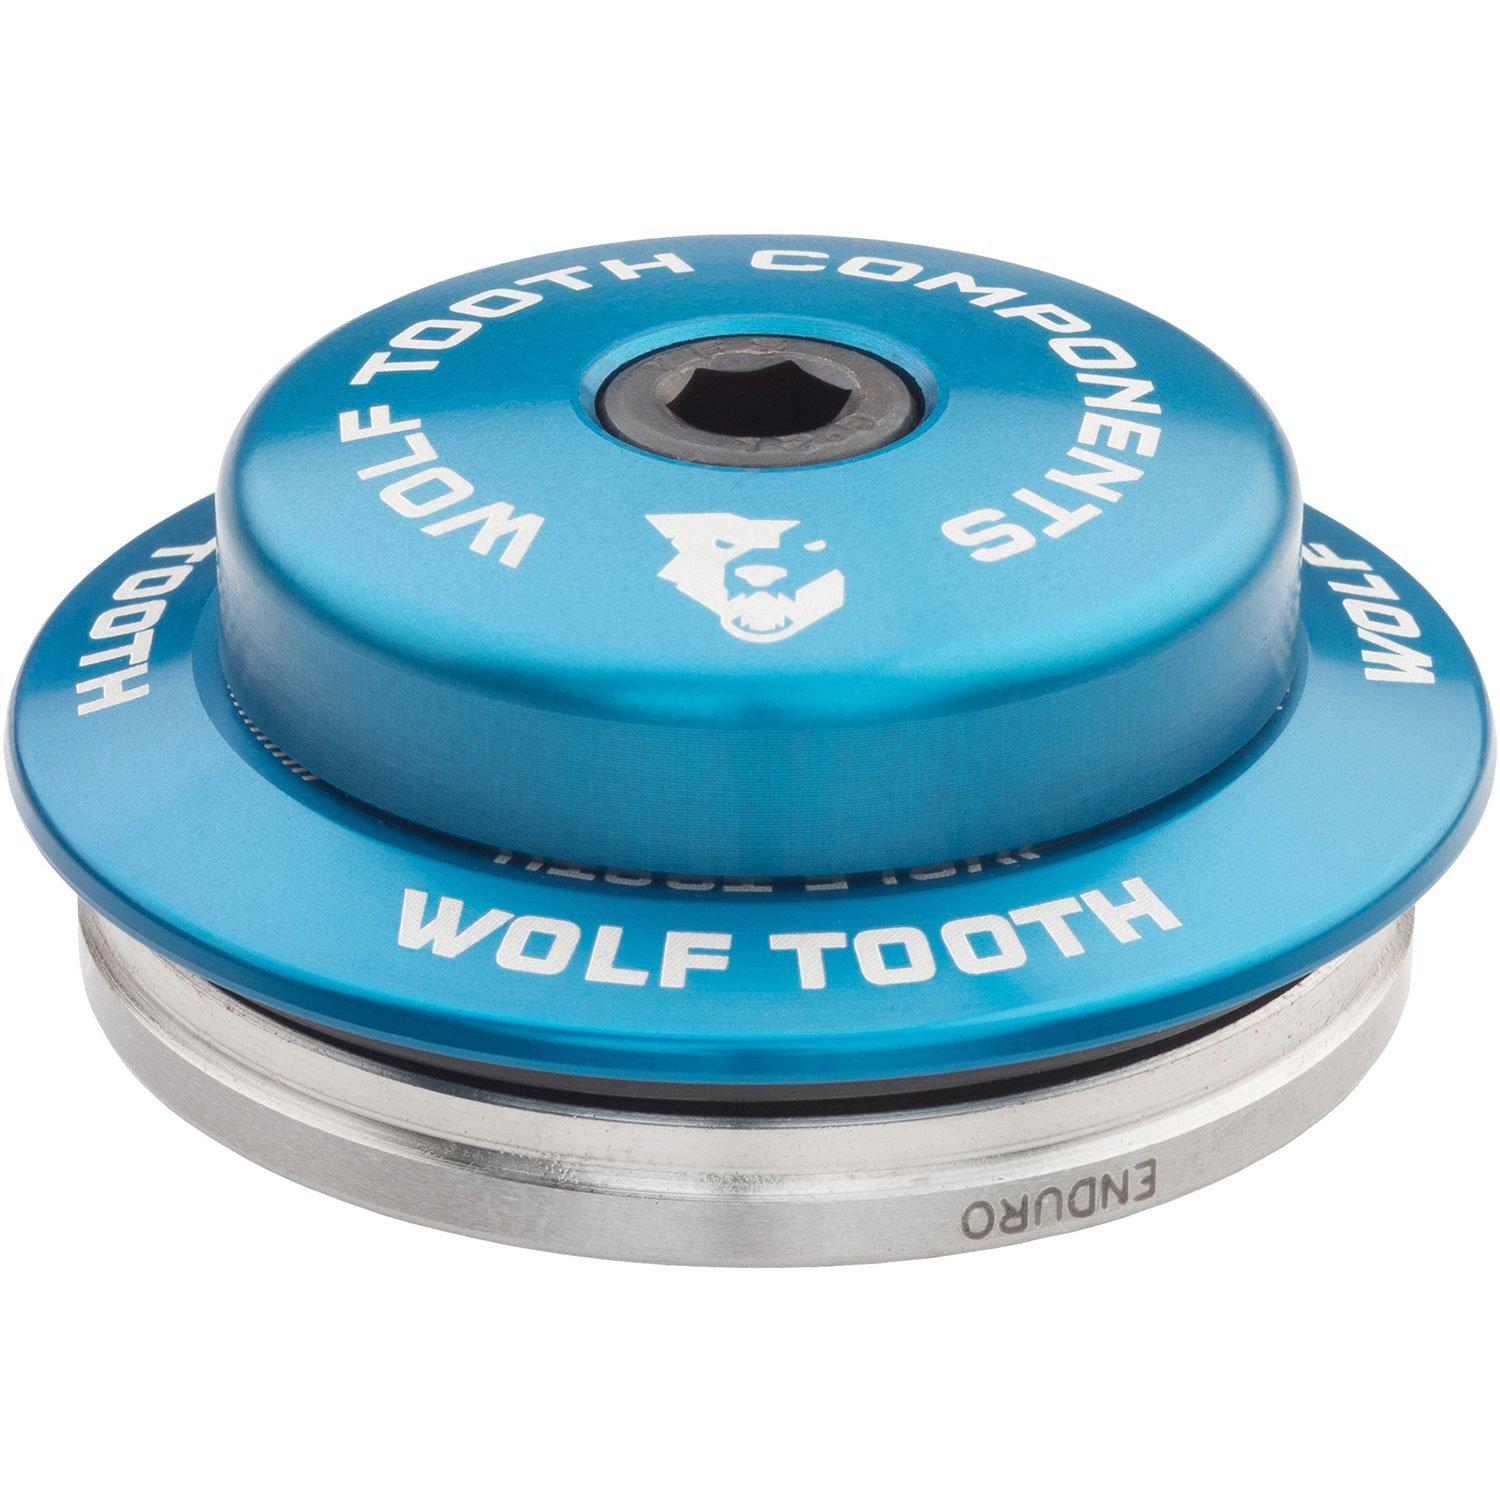 Wolf Tooth-Wolf Tooth Premium Integrated Standard Headset For Specialized-Blue-IS42 Upper - 3mm Stack-WTIS42USPEC3MMBLU-saddleback-elite-performance-cycling